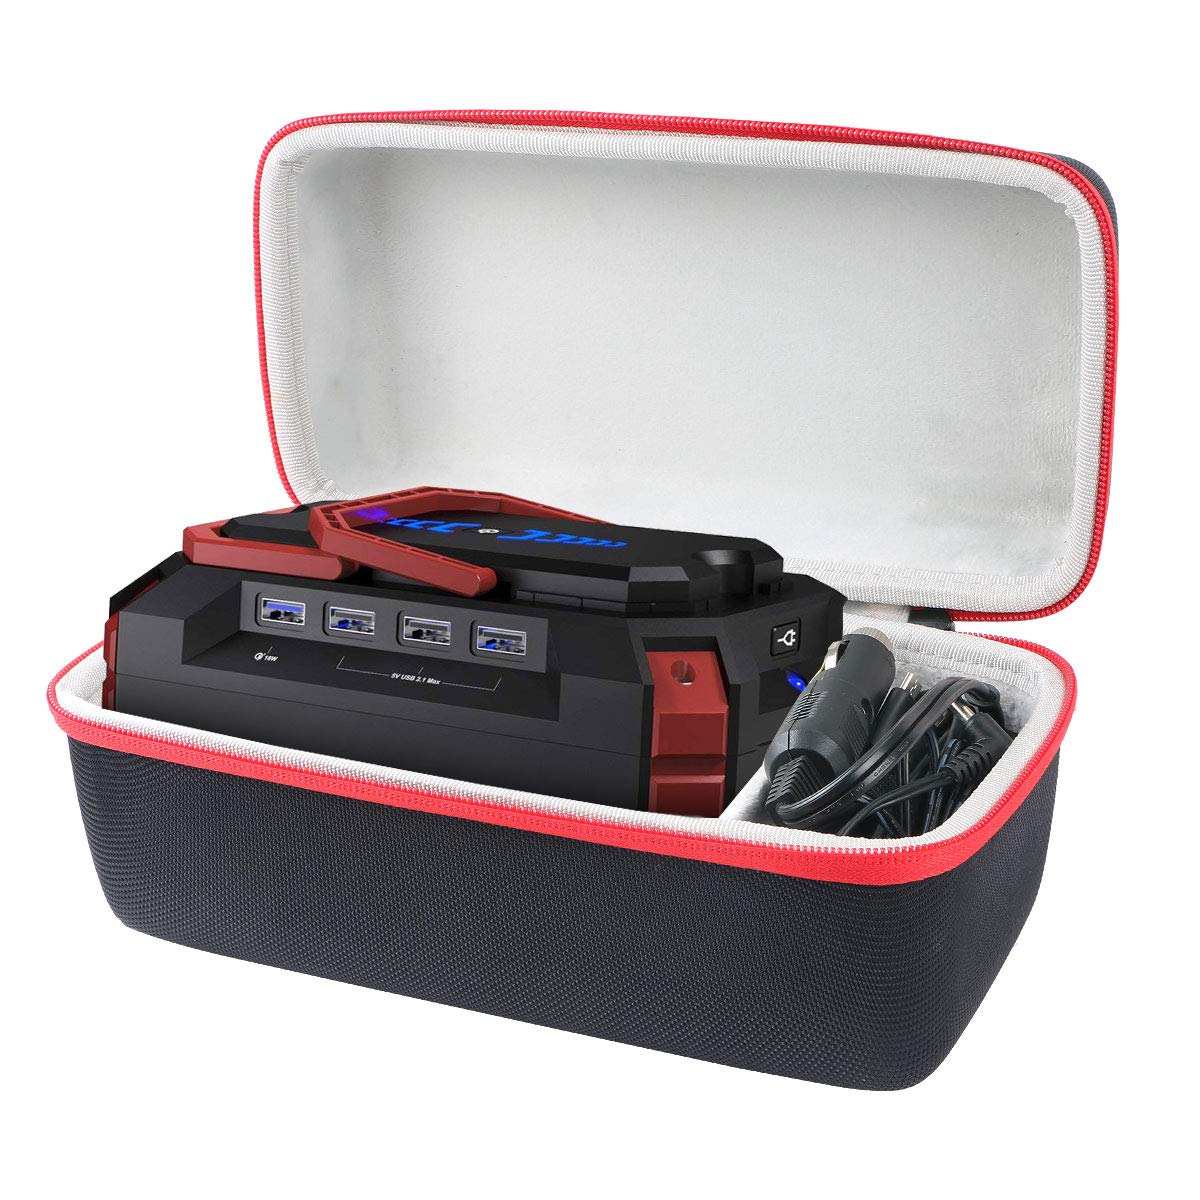 khanka Hard Travel Case Replacement for SUAOKI Portable Power Station, 150Wh Camping Generator Lithium Power Supply by khanka